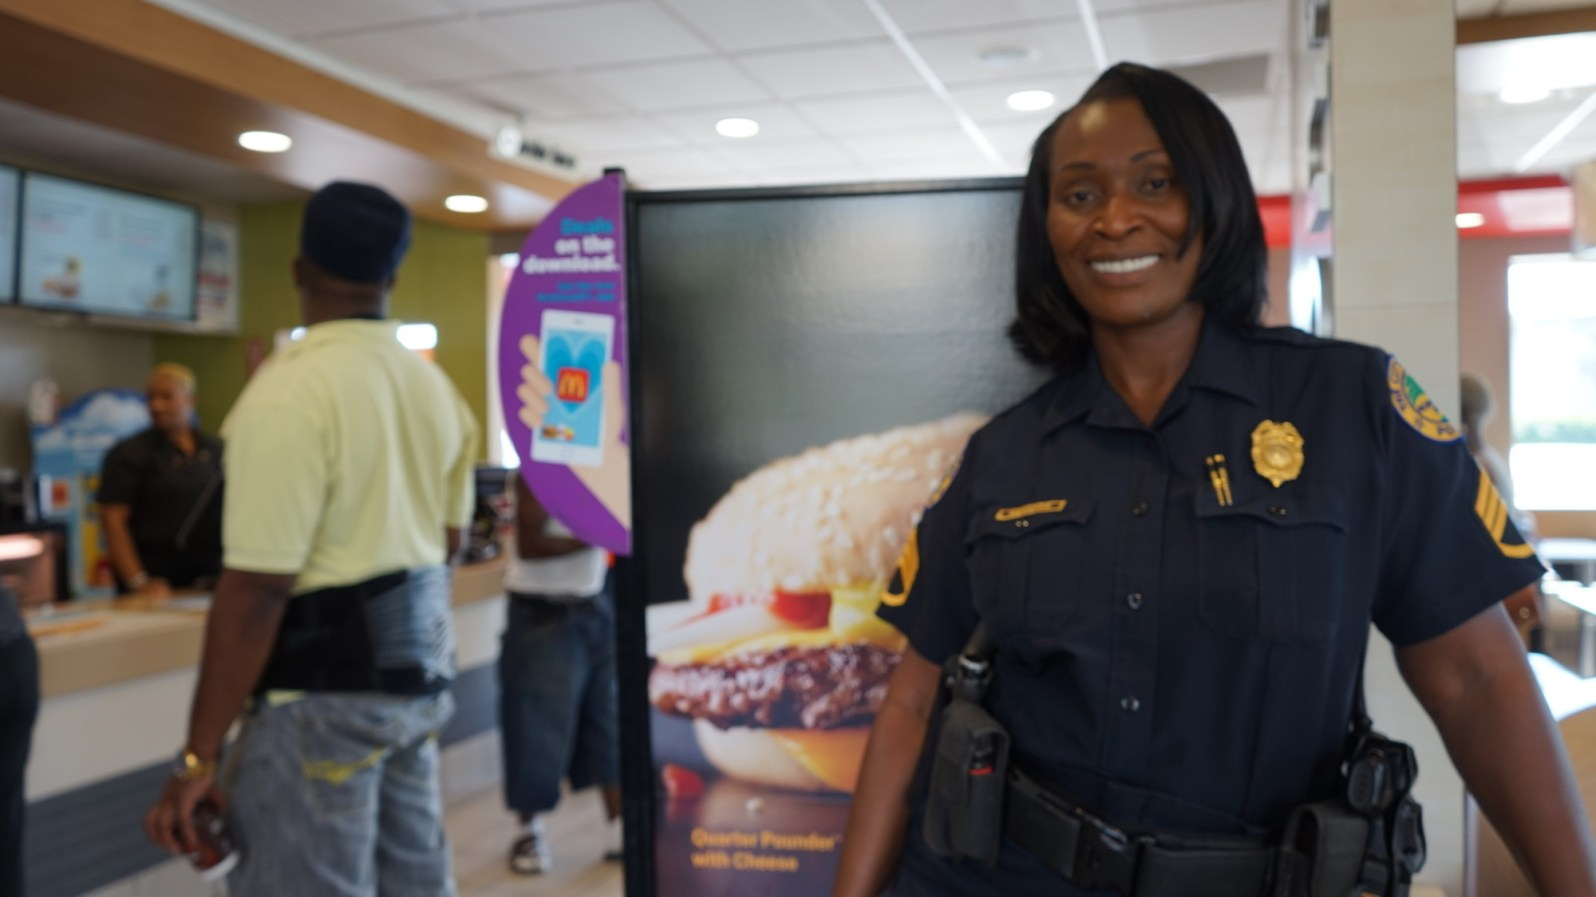 Jacqueline Mesidor, Sergeant, City of Miami Police Department